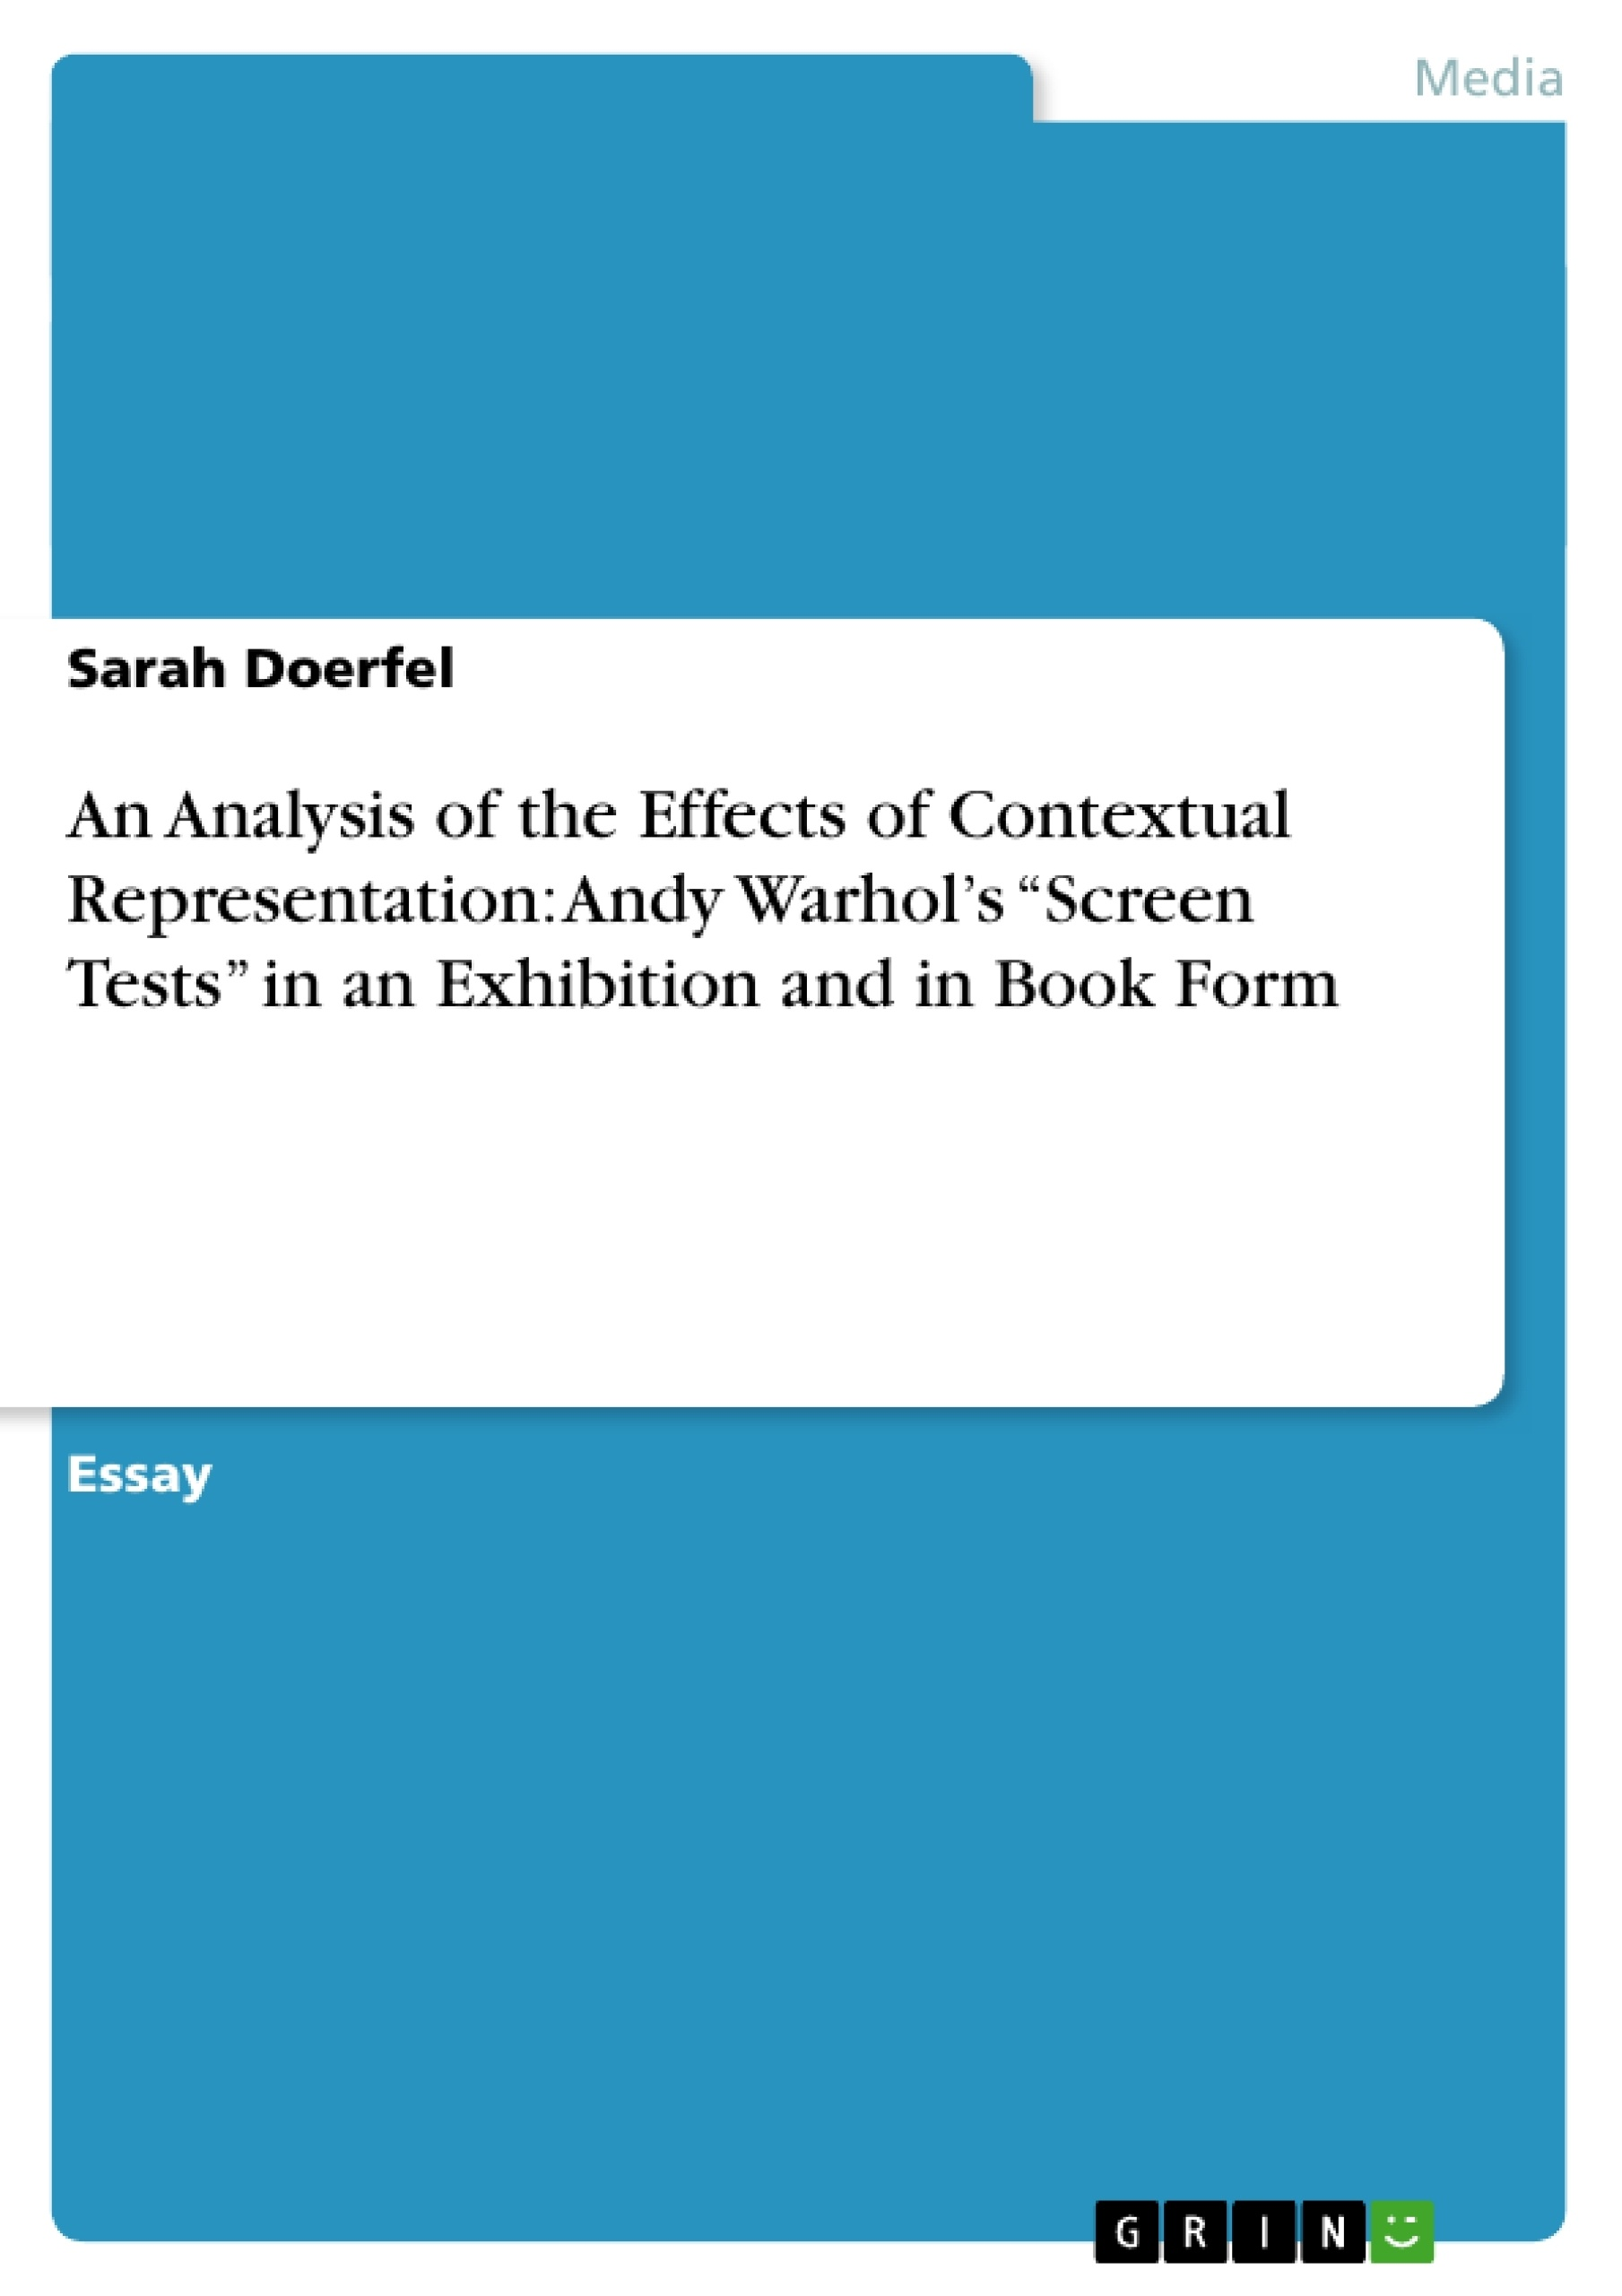 """Title: An Analysis of the Effects of Contextual Representation: Andy Warhol's """"Screen Tests"""" in an Exhibition and in Book Form"""